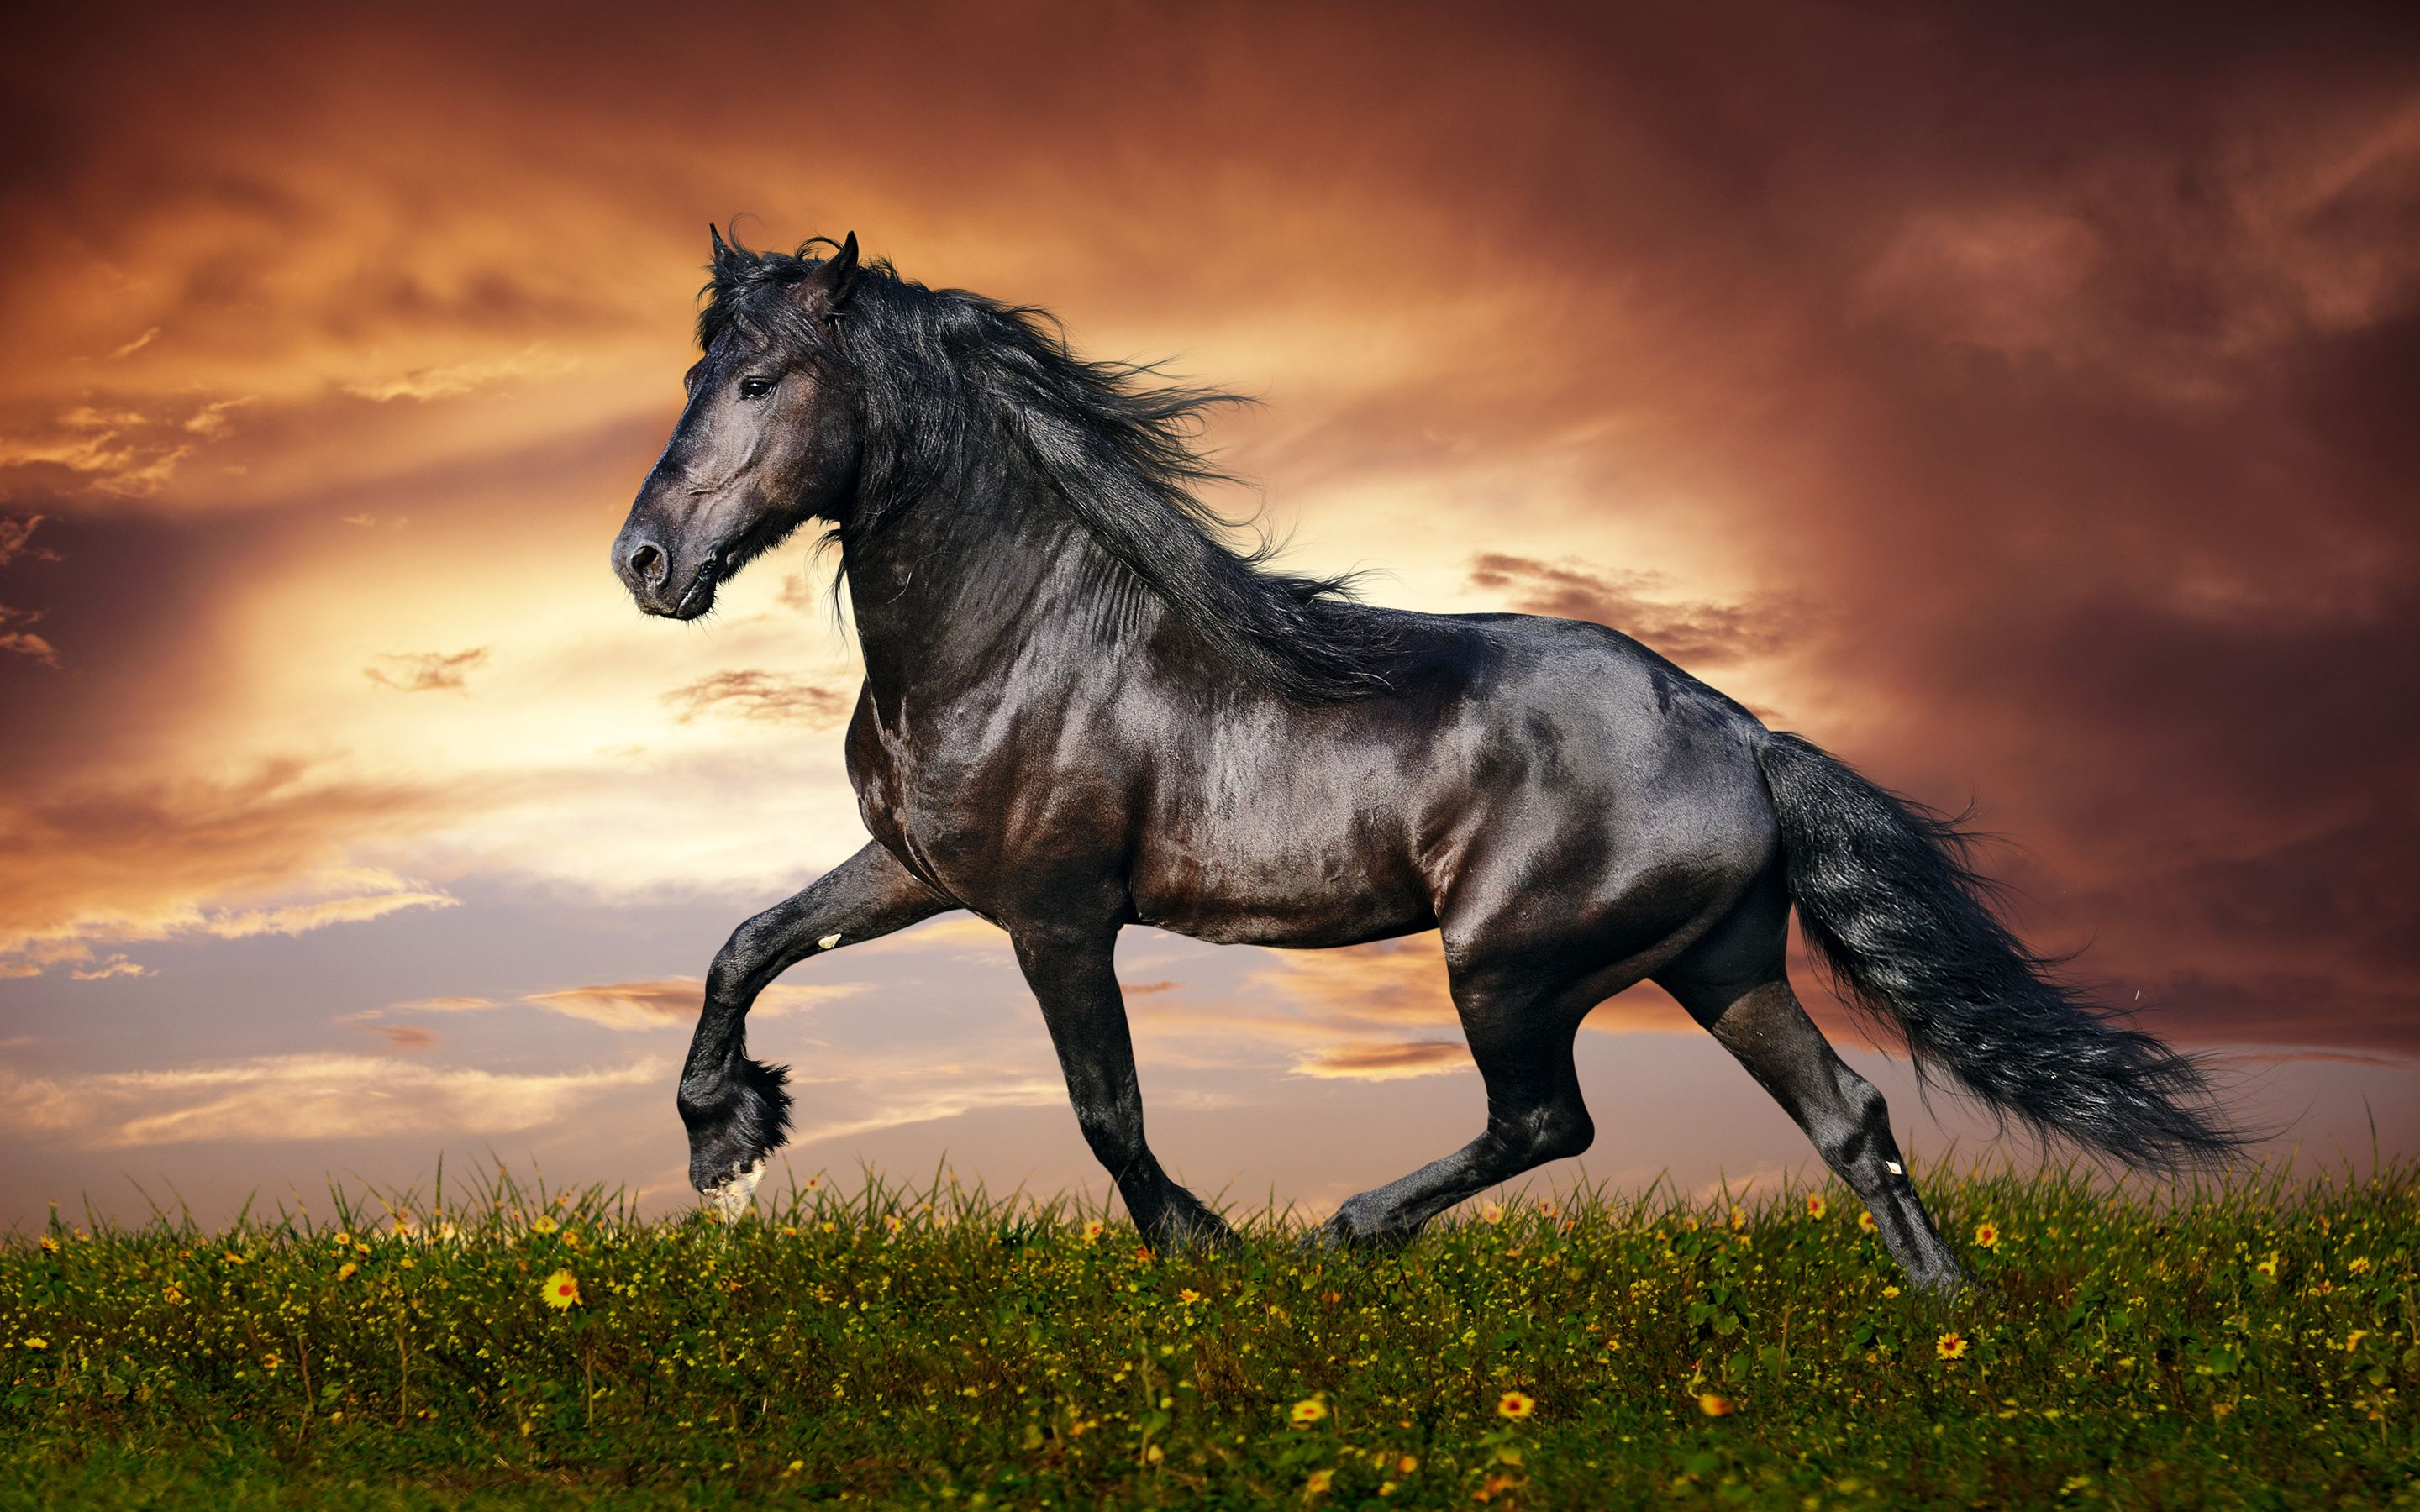 horse awesome widescreen desktop wallpaper for background